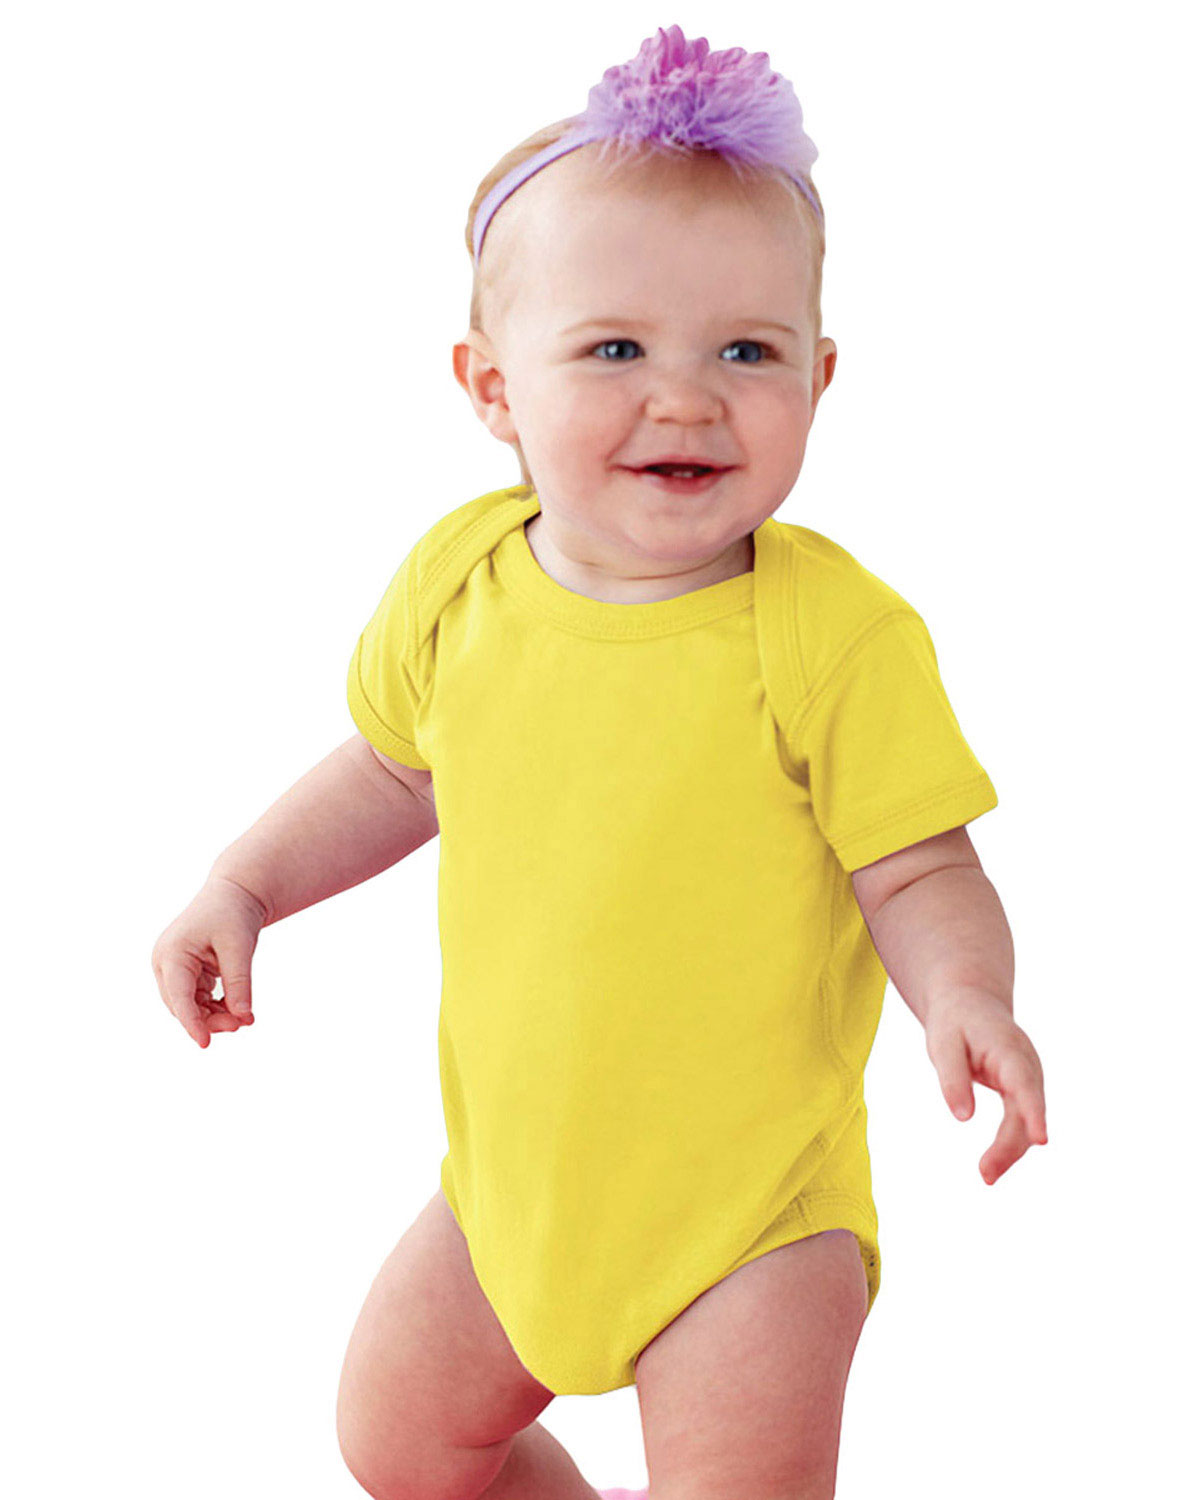 Rabbit Skins 4424 Infants Fine Cotton Jersey Lap Shoulder Bodysuit at GotApparel